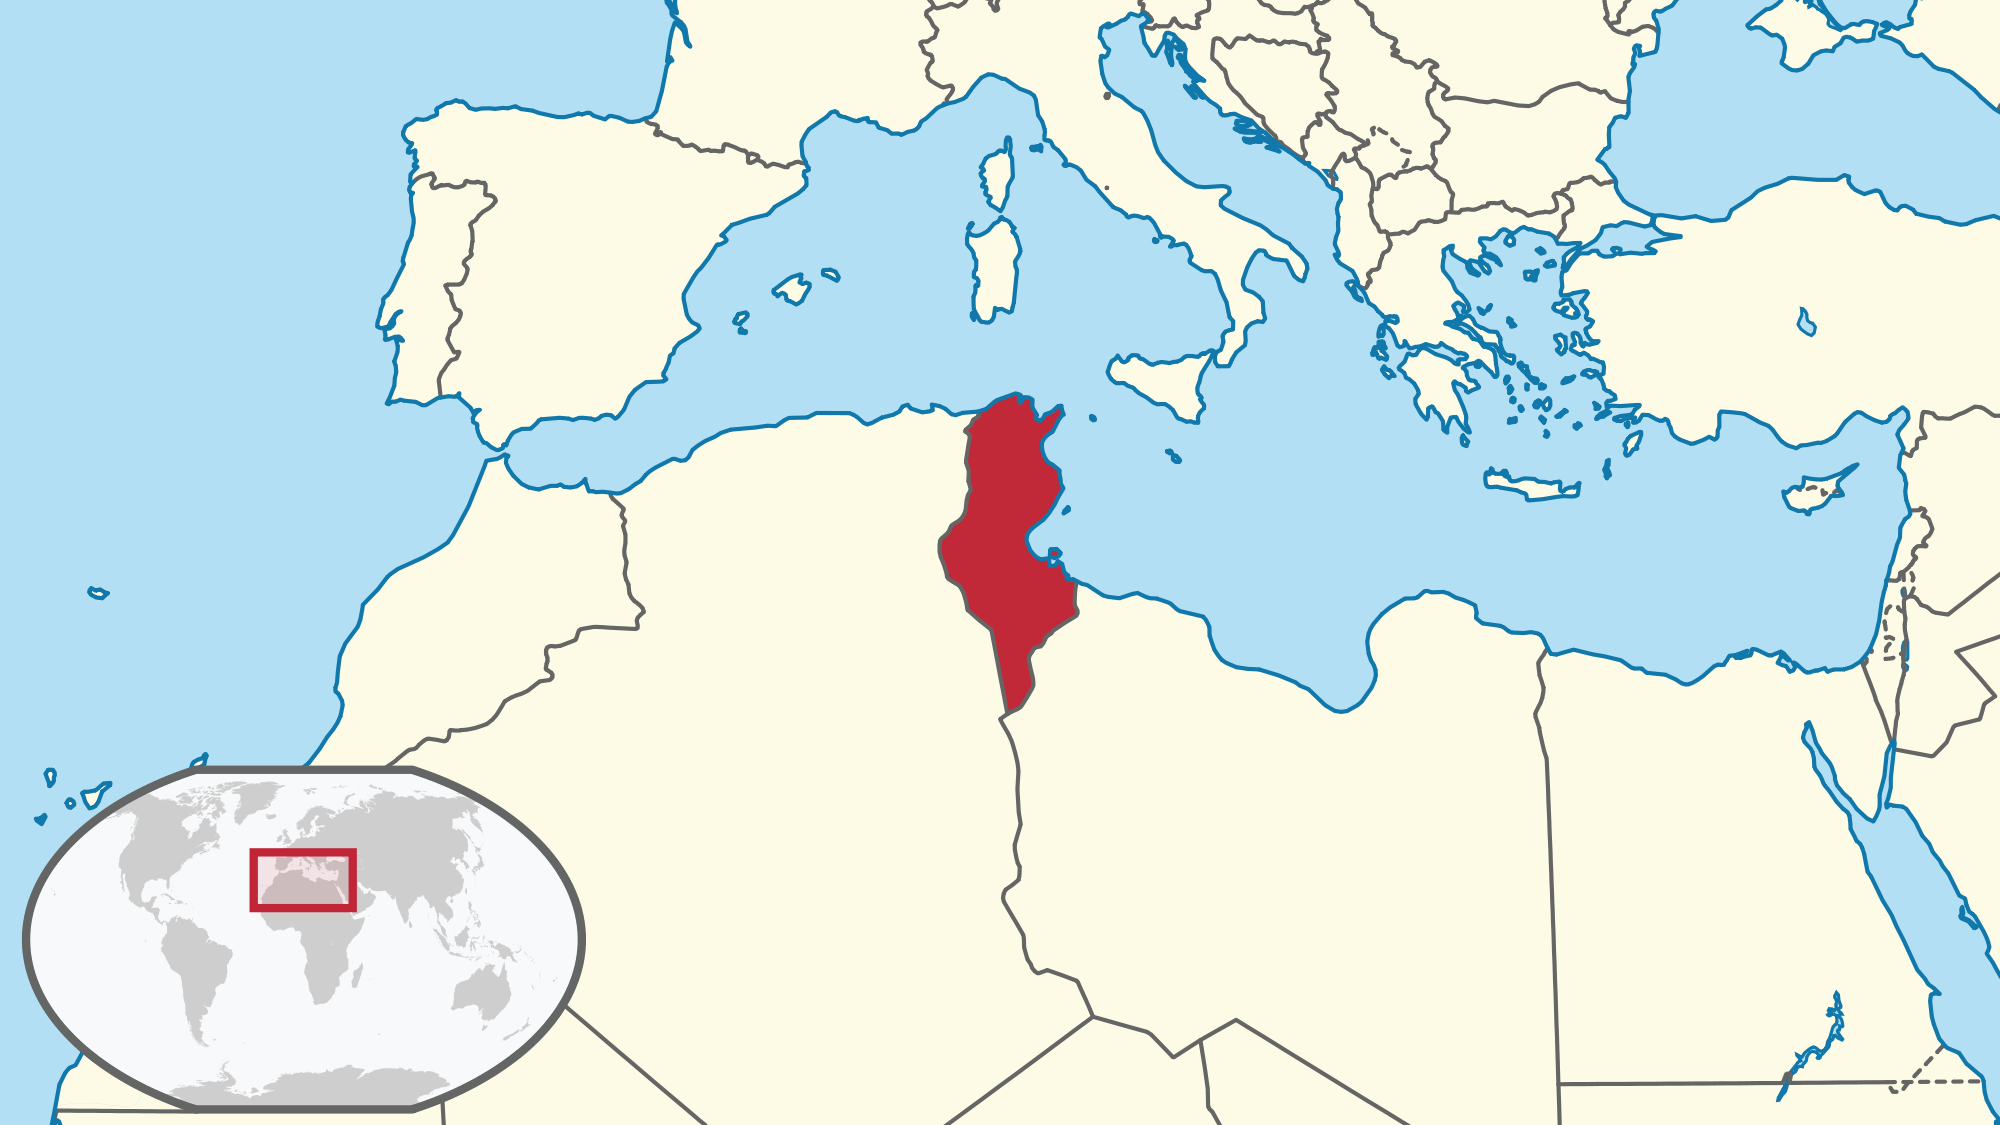 Location Of The Tunisia In The World Map